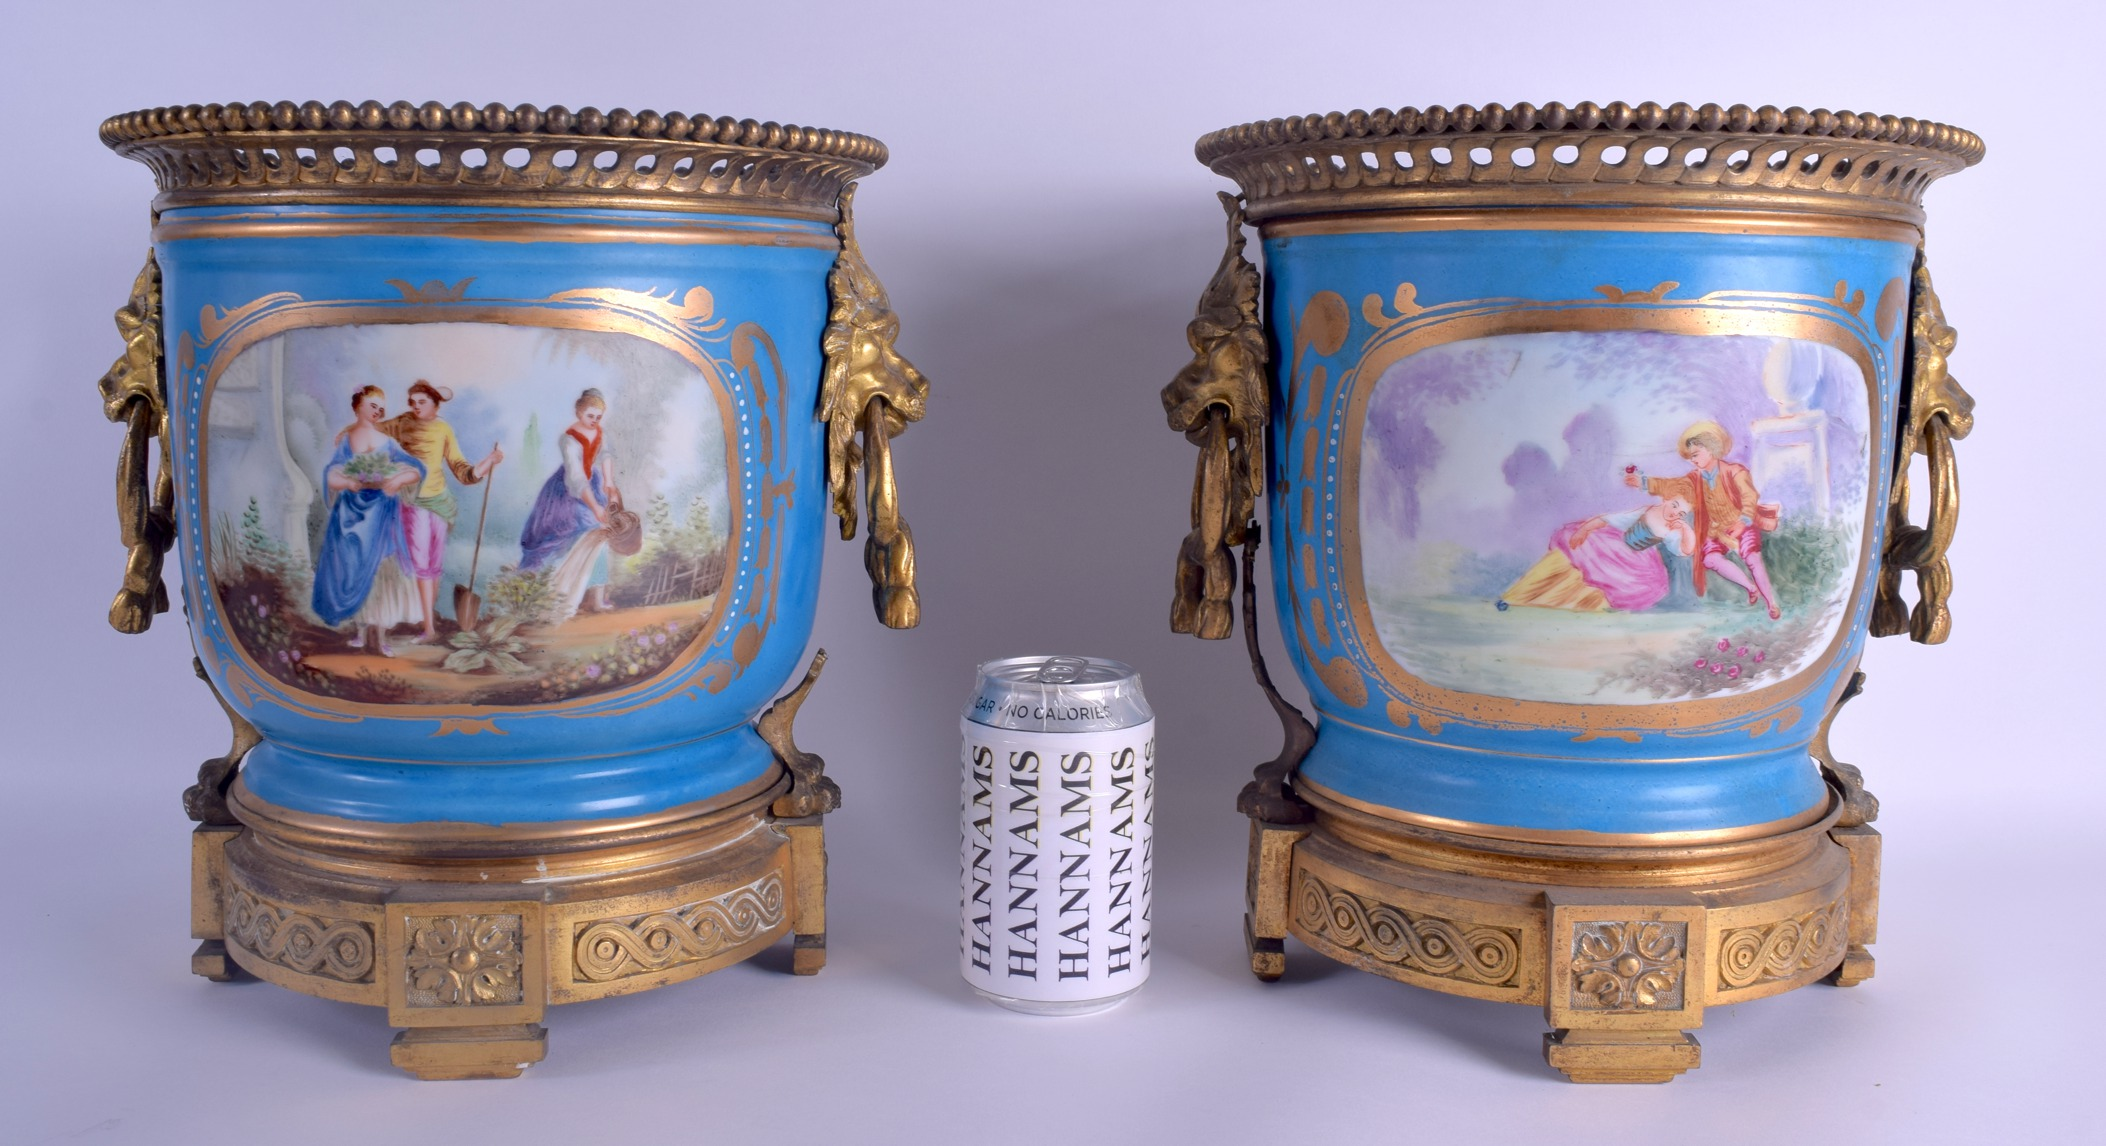 Lot 84 - A LARGE PAIR OF 19TH CENTURY FRENCH SEVRES PORCELAIN JARDINIERES with gilt bronze mask head